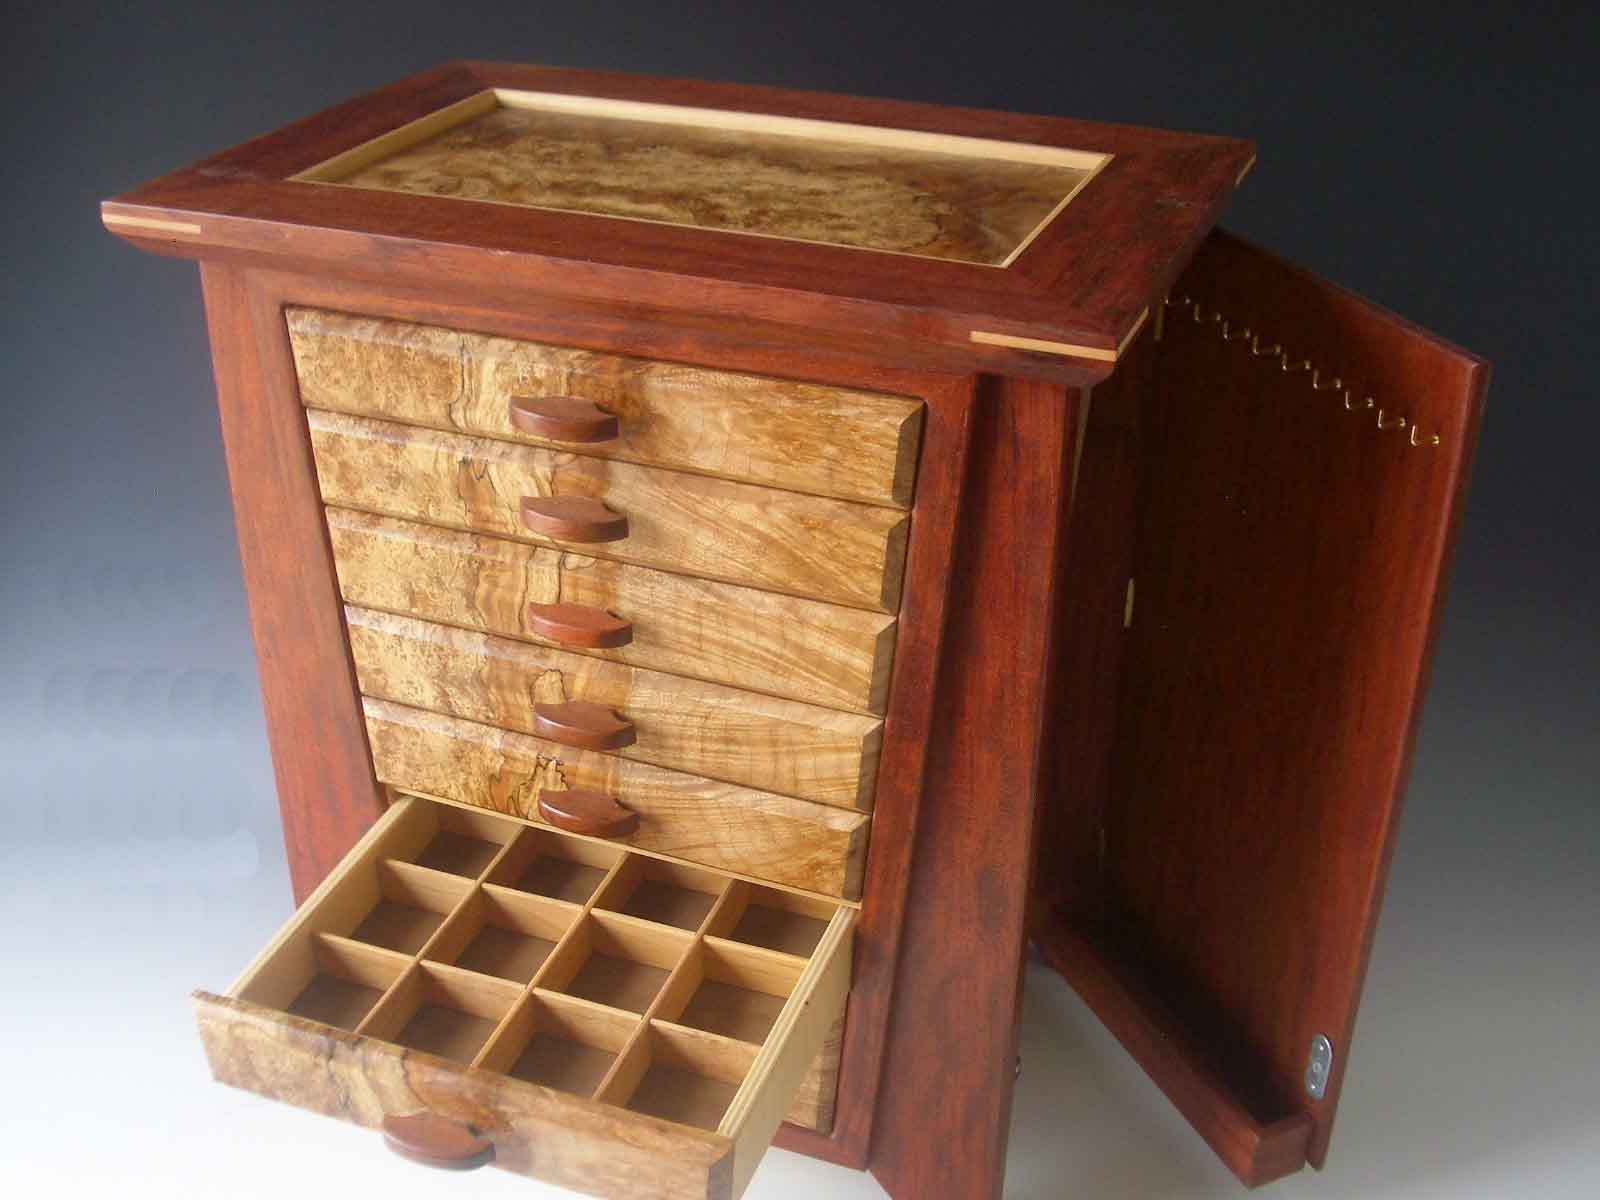 Diy how to make a jewelry box out of wood plans free for How to make a ring box out of wood